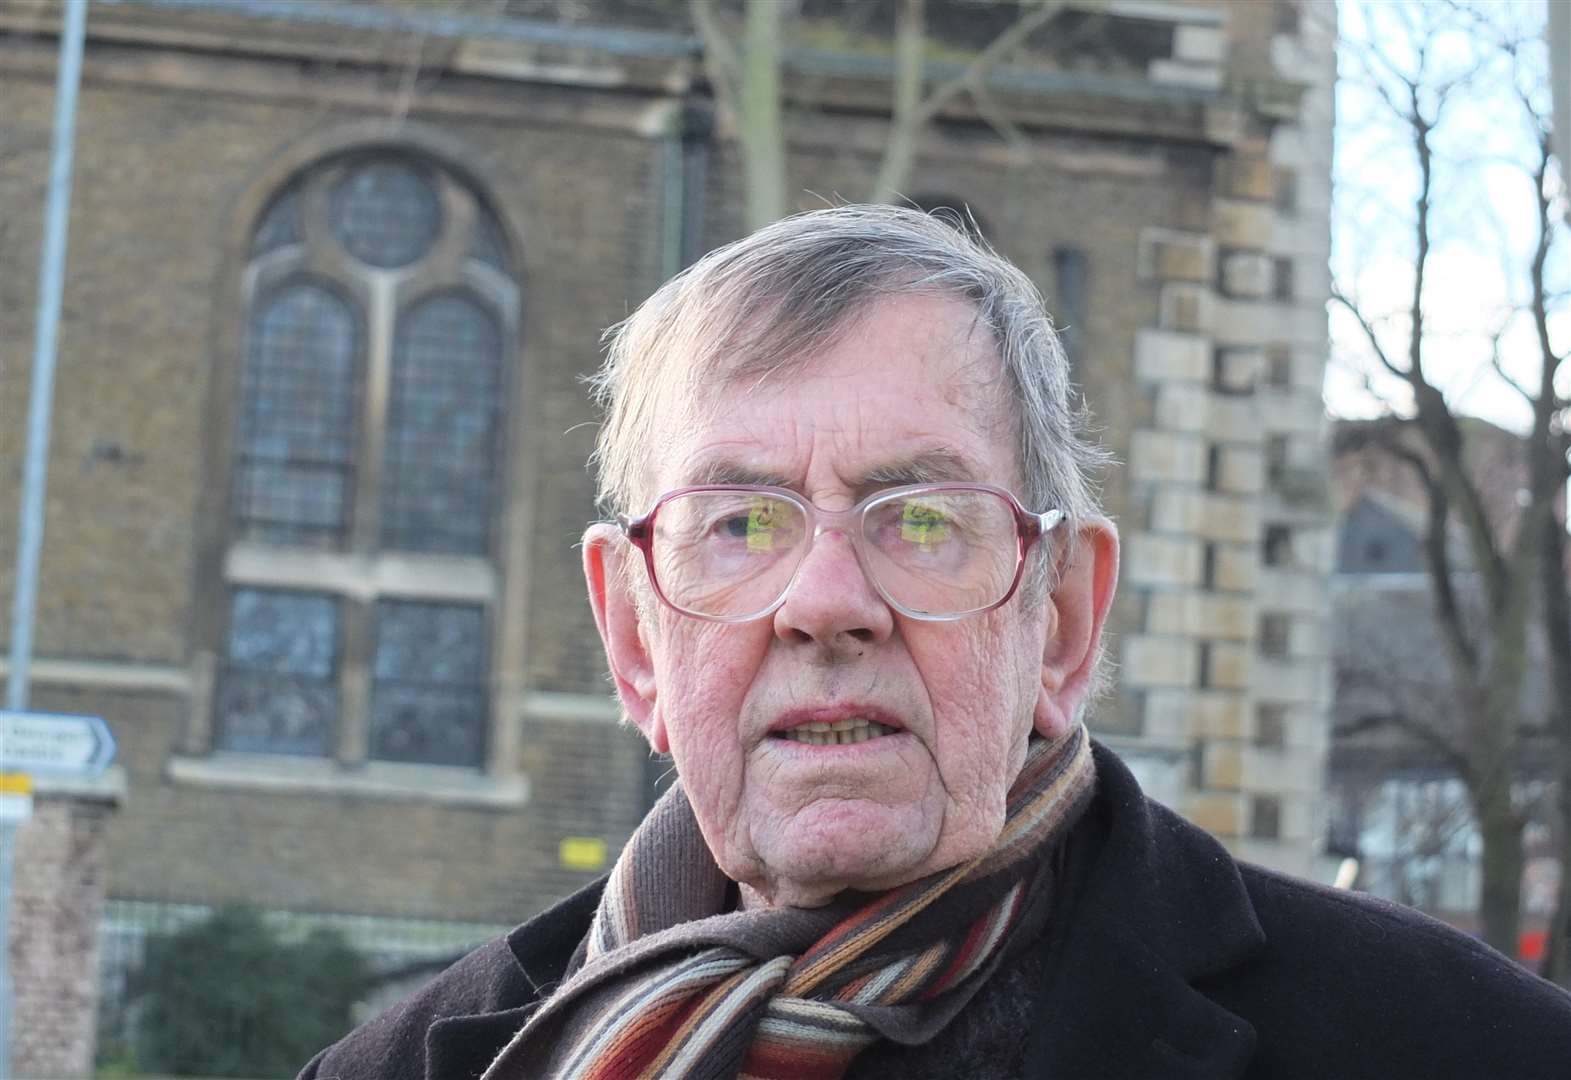 Funds raised for memorial to historian